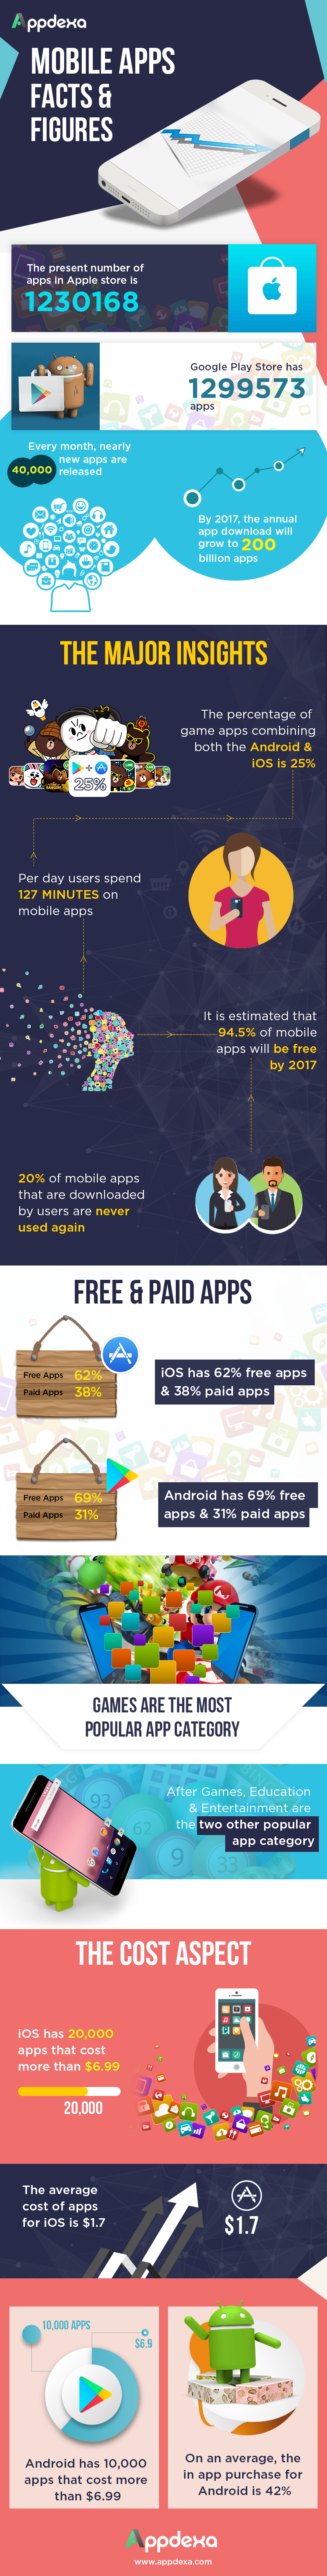 It's an App-Happy World: Facts and Figures About the Mobile Apps Revolution - Infographic